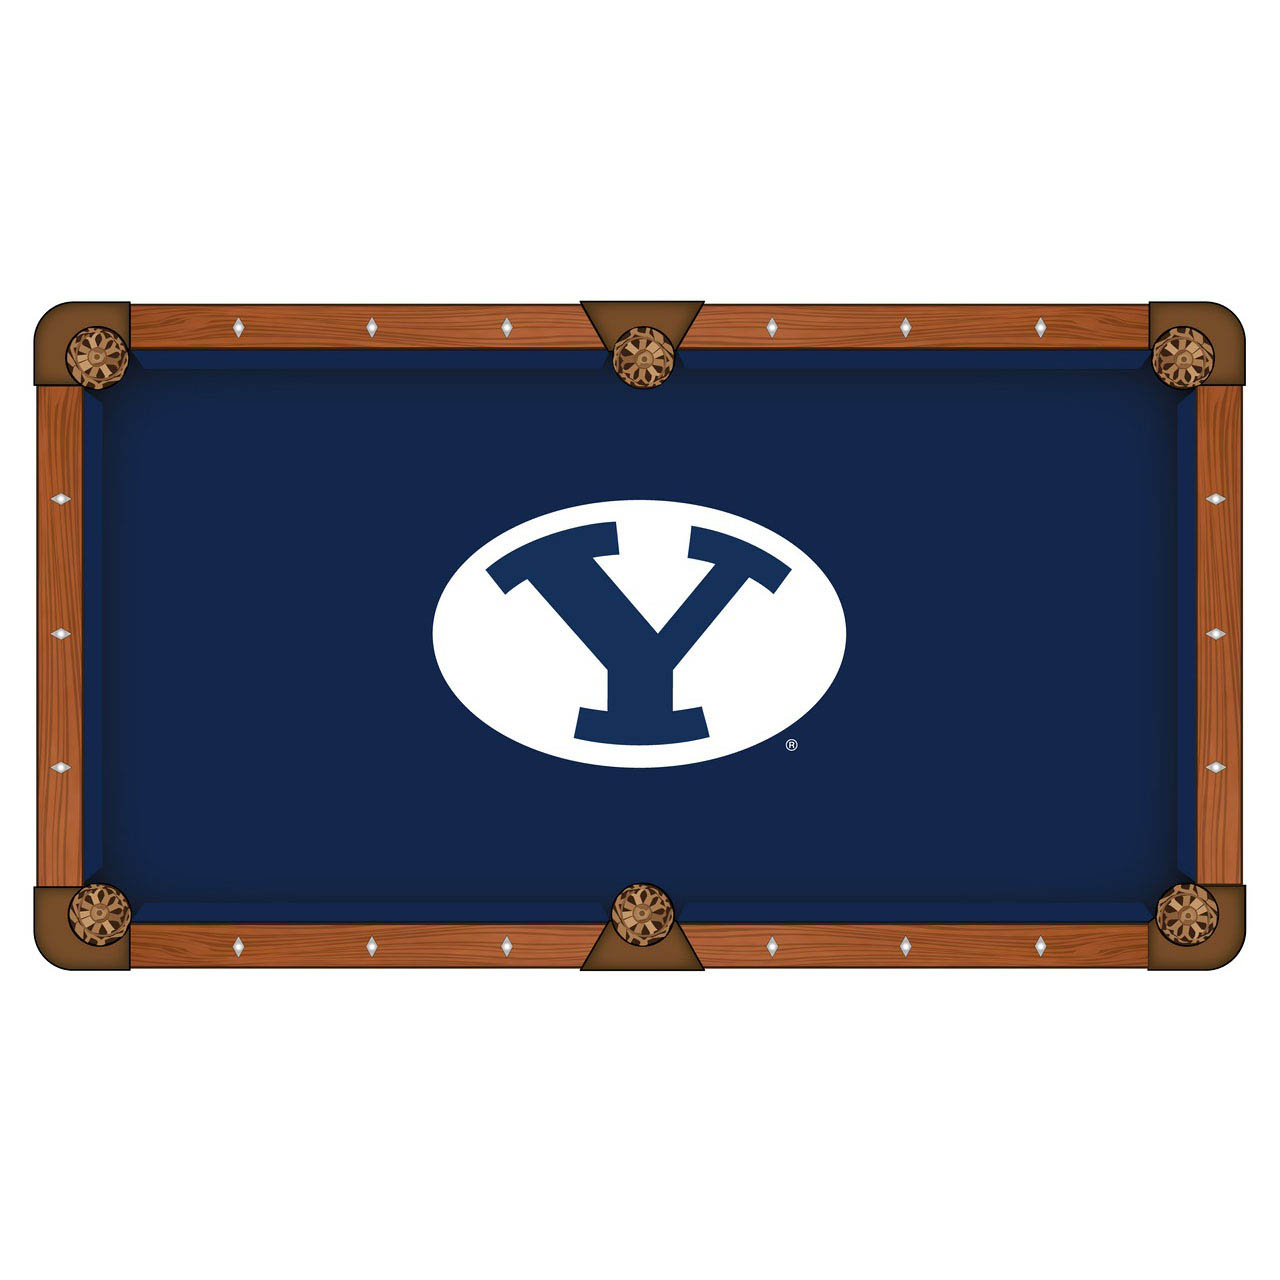 Superb-quality Brigham Young University Pool Table Cloth Product Photo